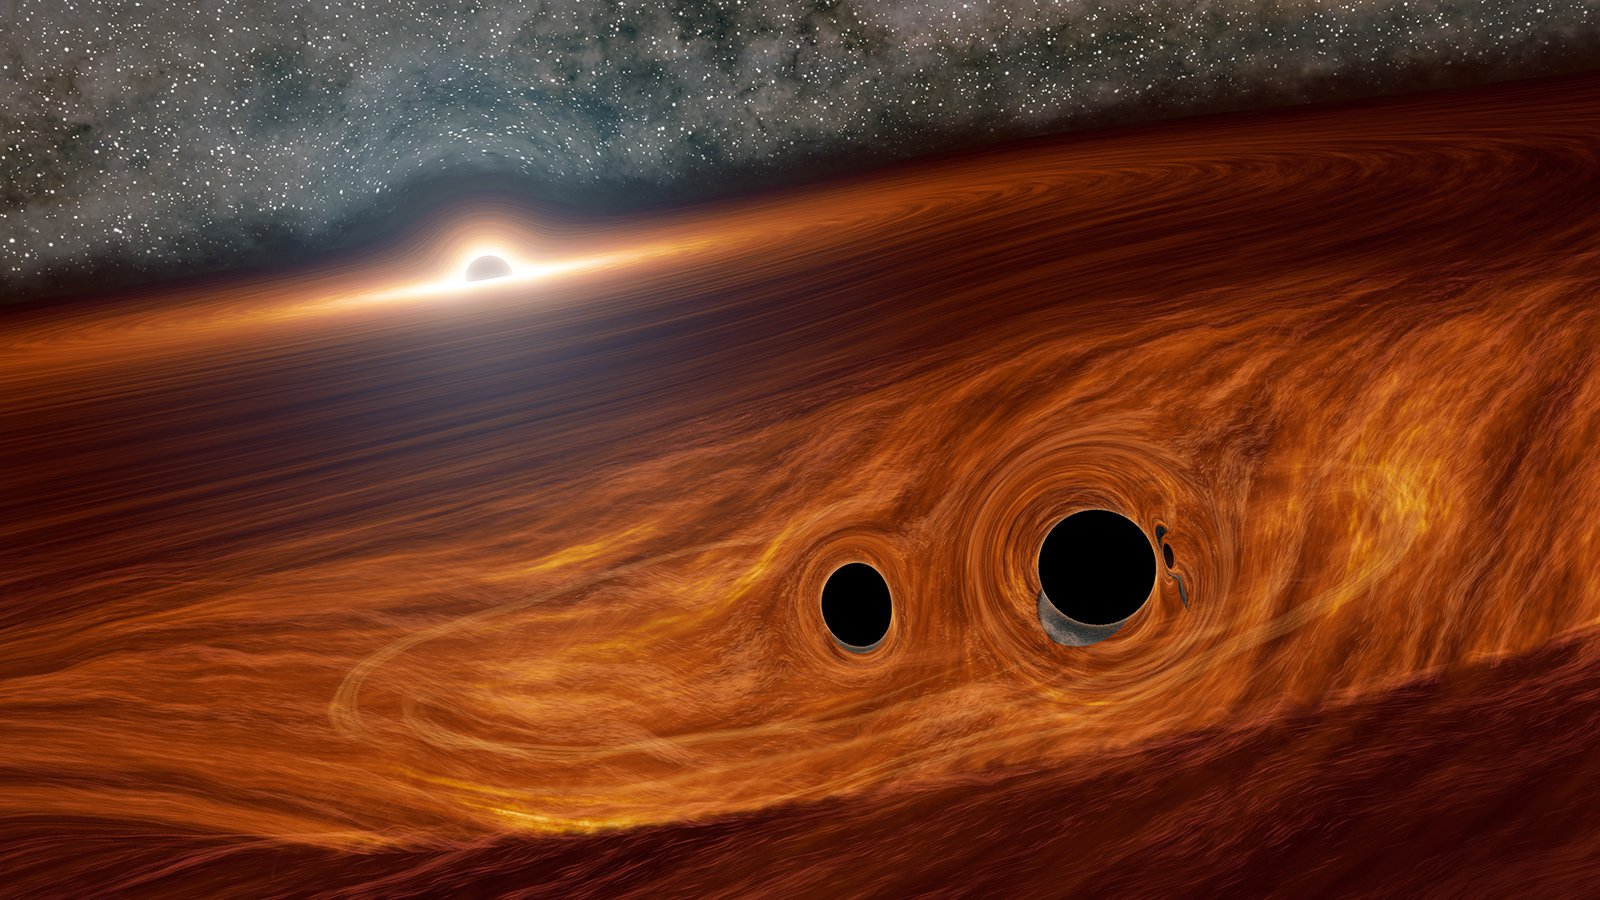 black hole merger with supermassive black hole